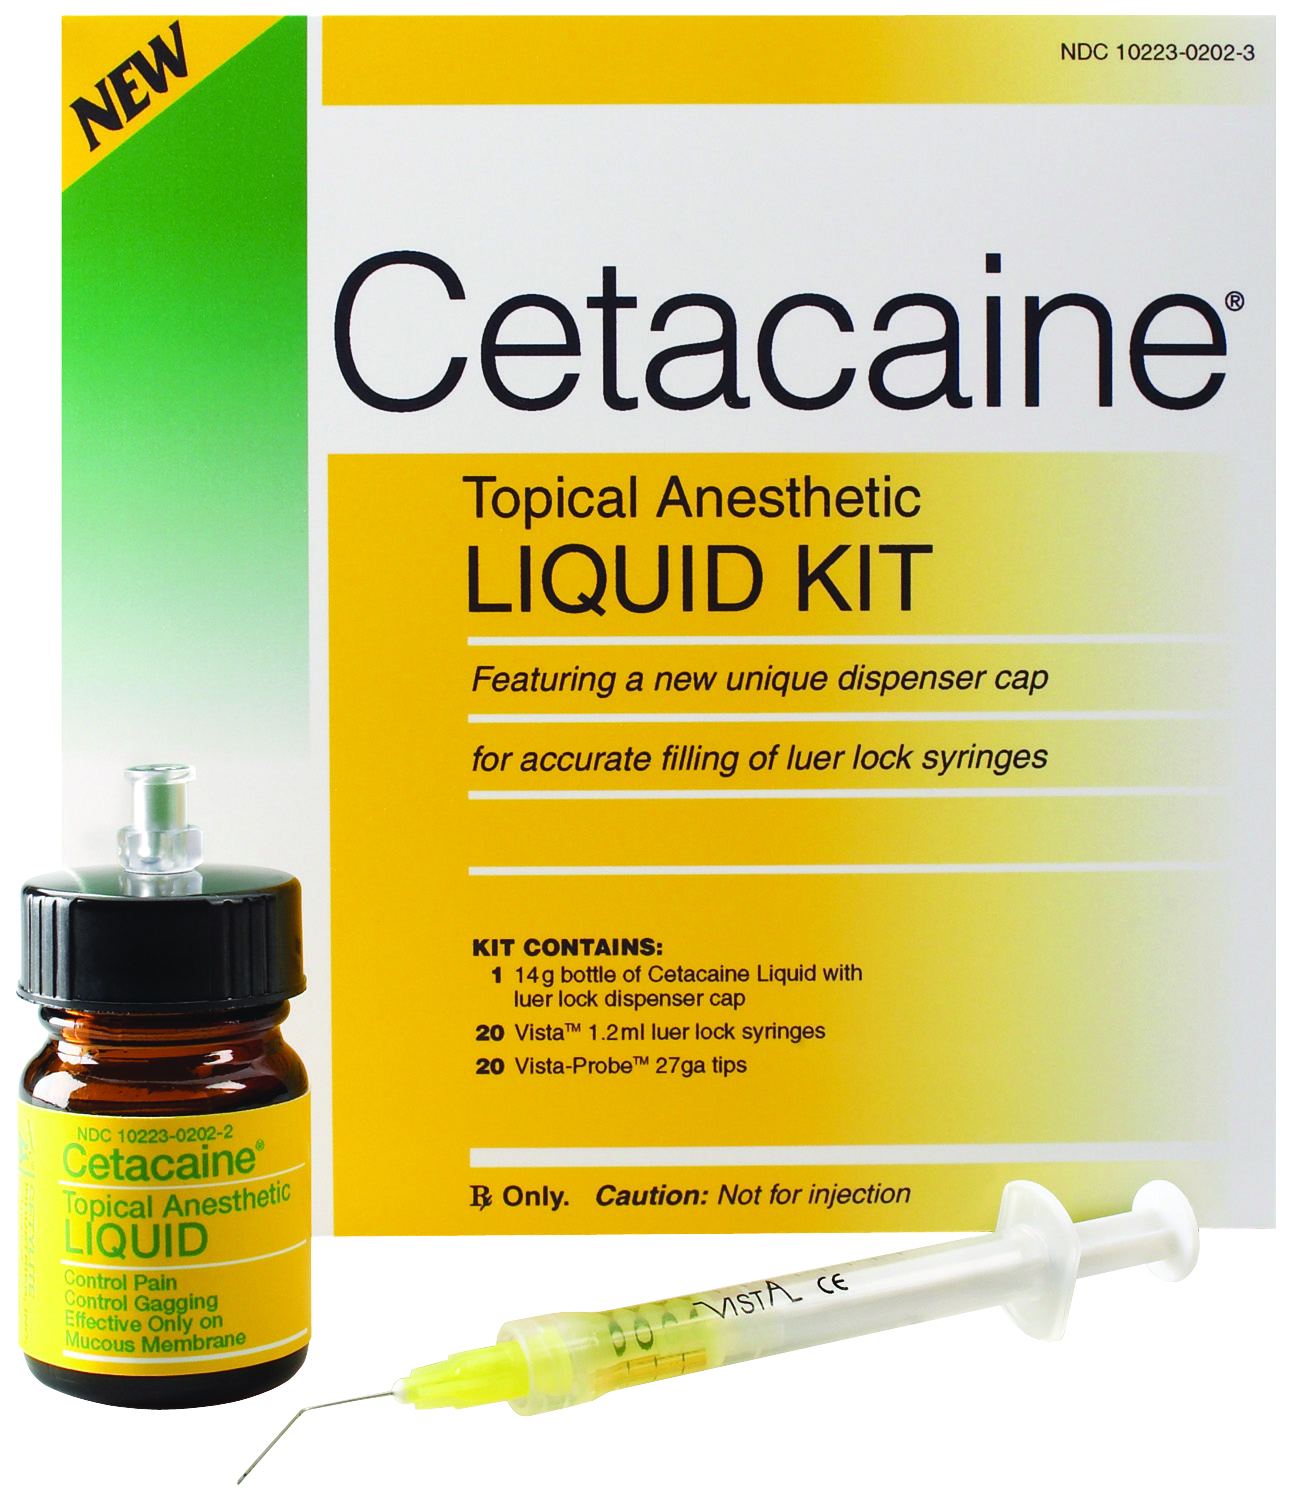 Cetacaine Topical Anesthetic Liquid Kit